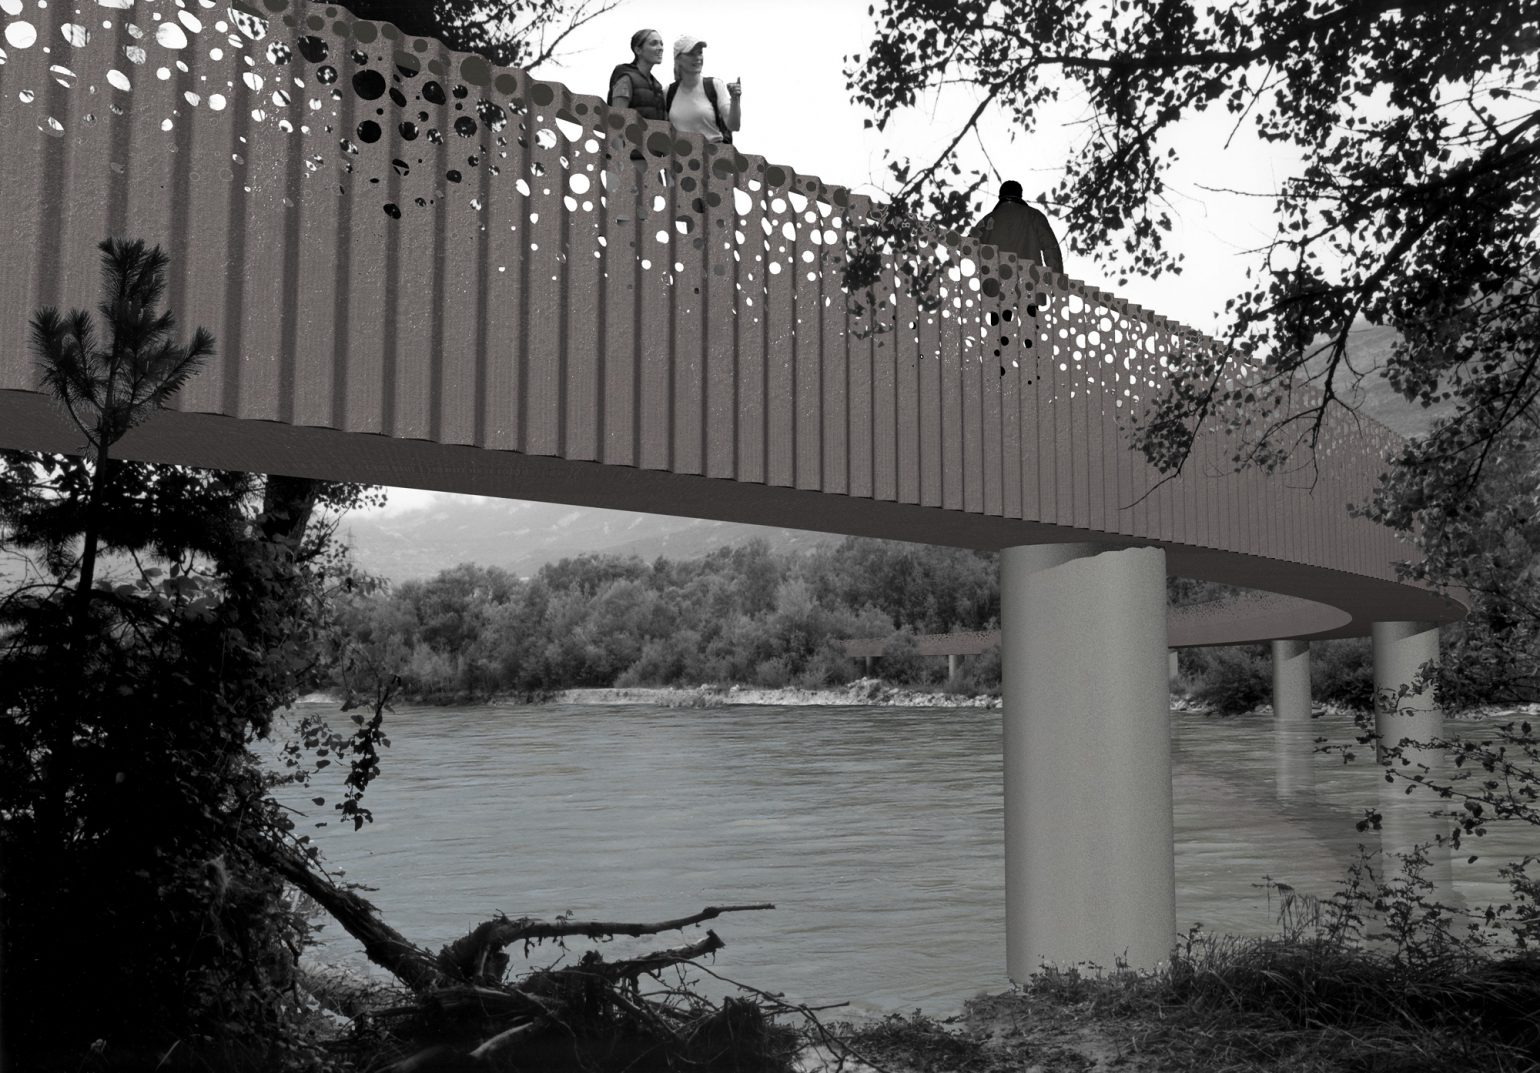 passerelle-finges-sierre-meyer-architecture-sion-02